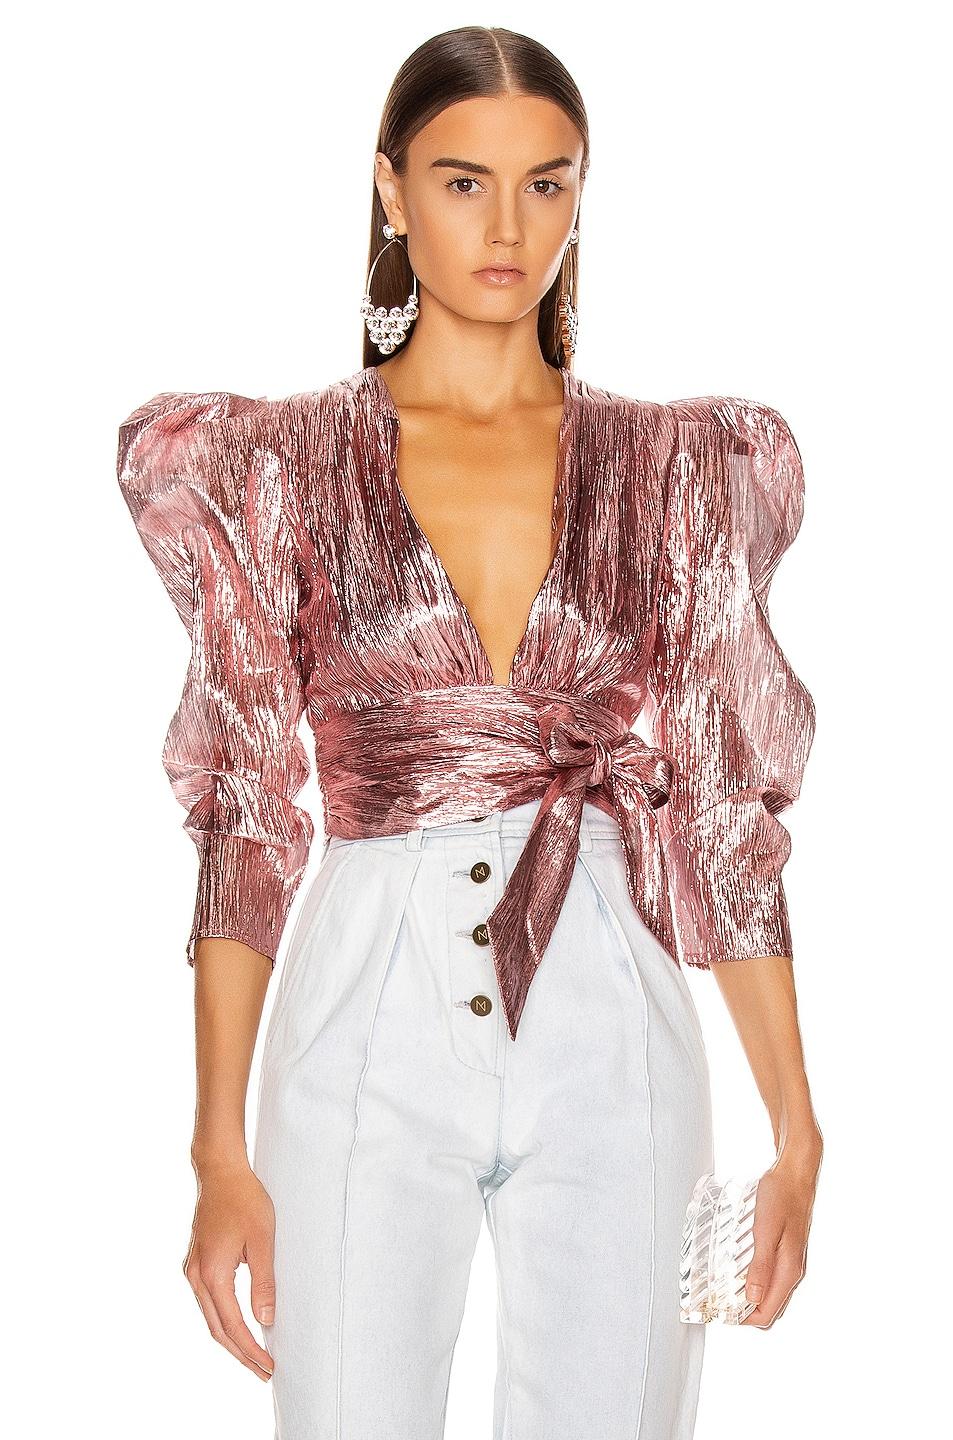 Image 1 of Atoir Close Call Crop Top in Orchid Pink